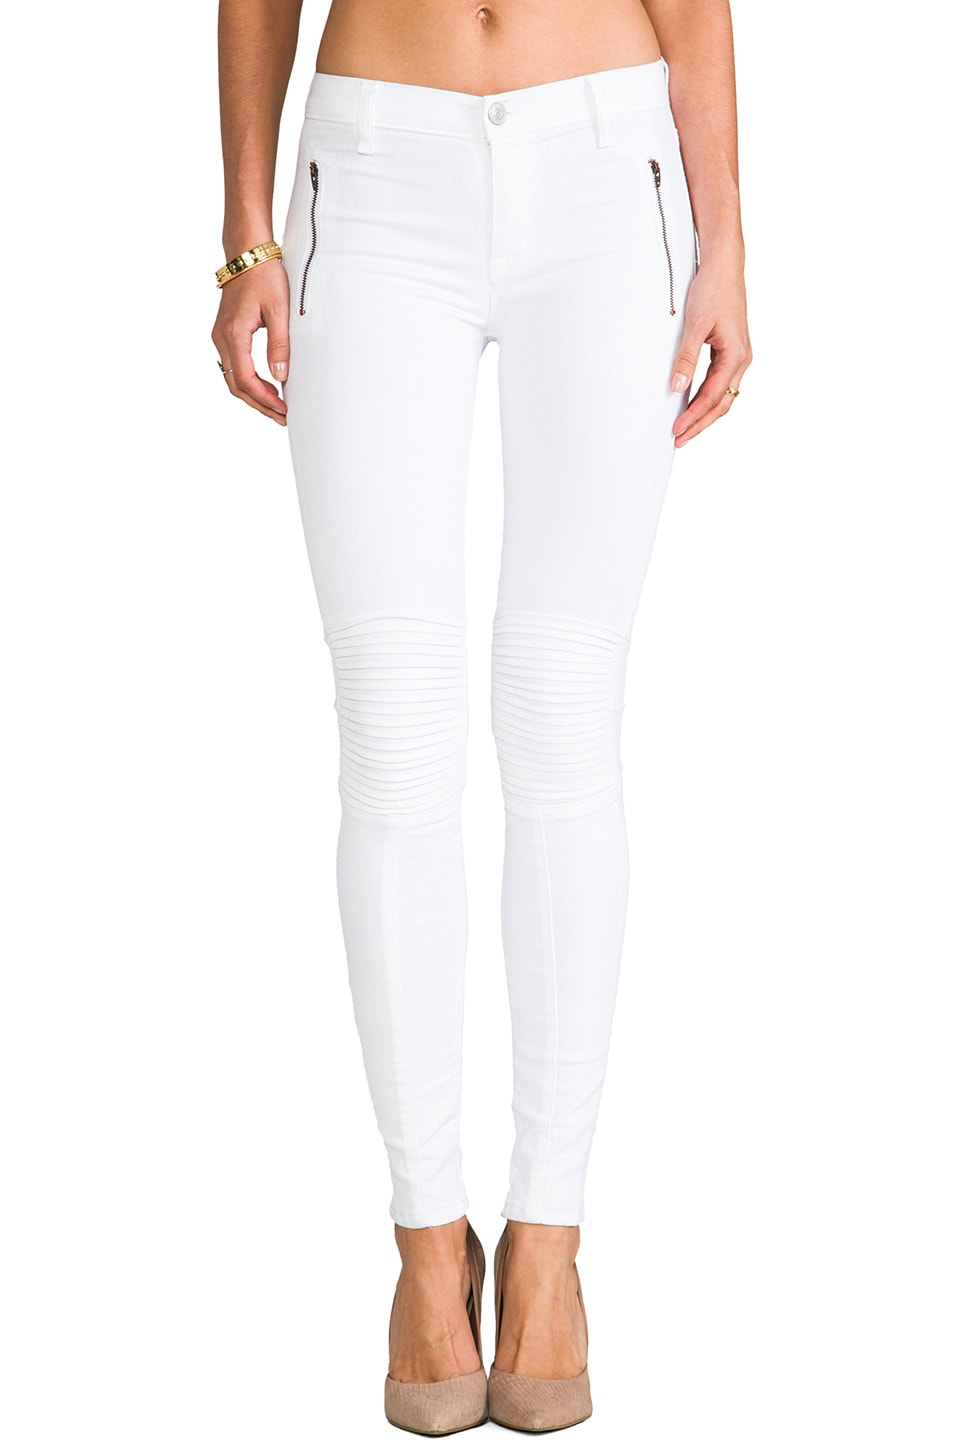 White Moto Jeans - Jeans Am